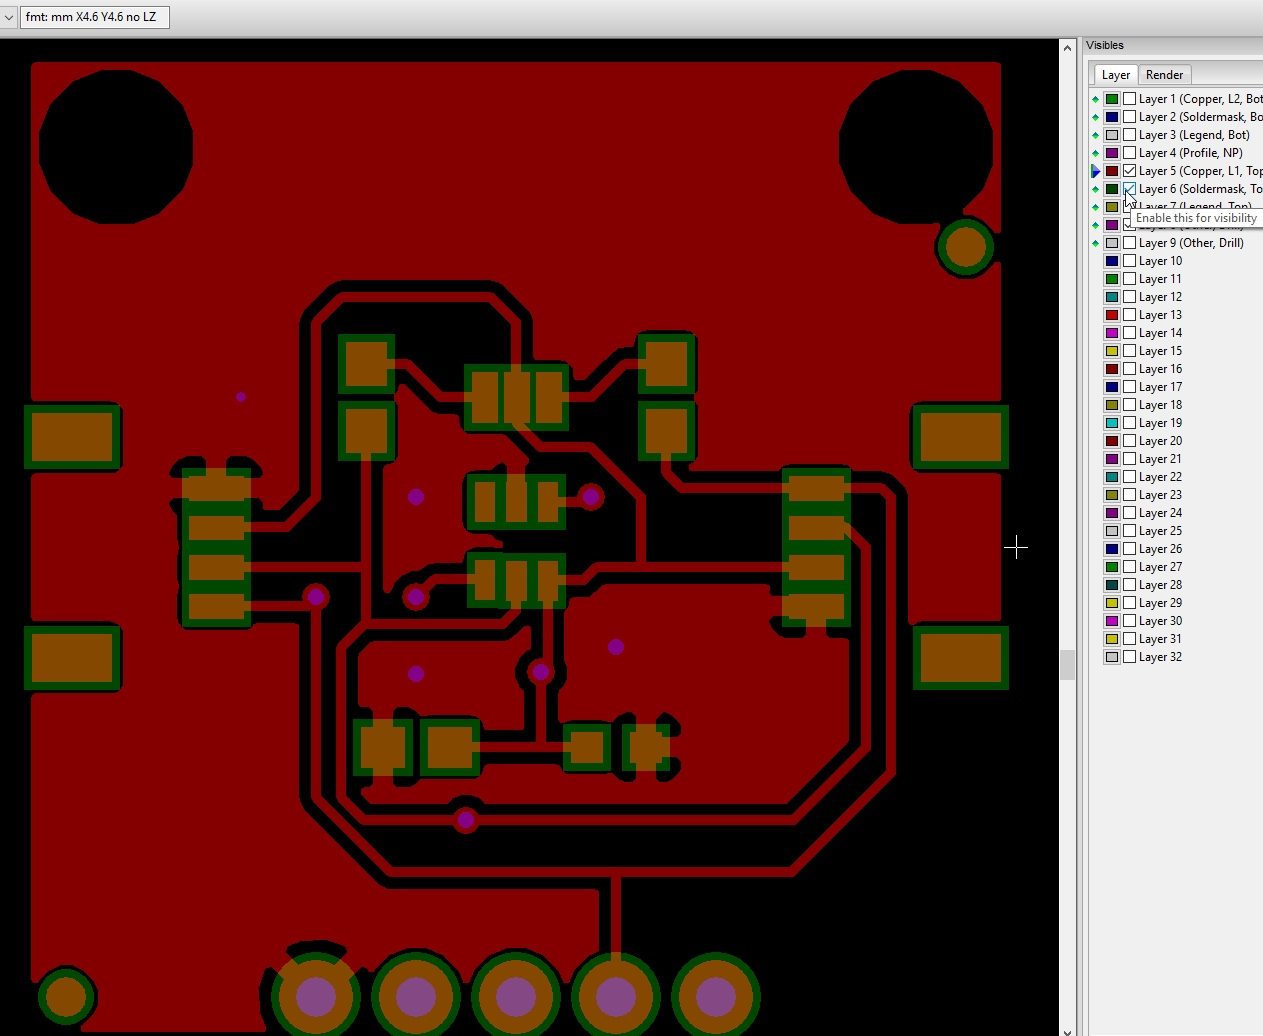 Beginners Guide To Kicad Gerber Files For Your Printed Circuit Board Design Online So Simple Turn On And Off Layers